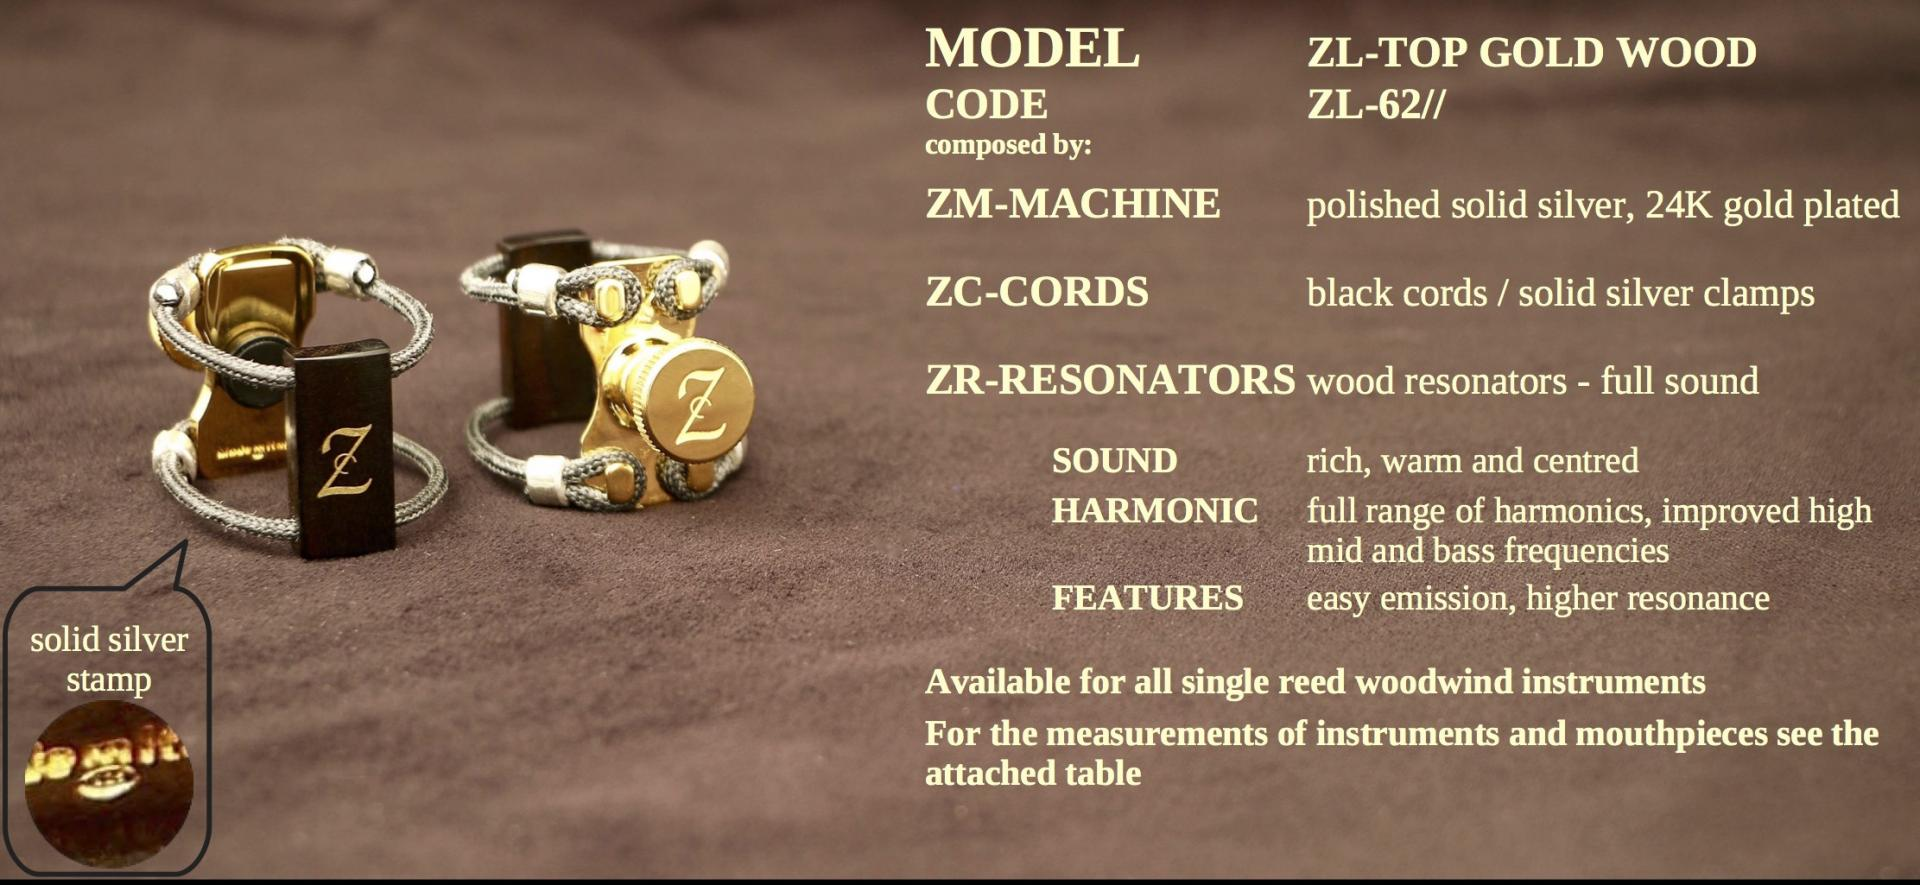 ZAC LIGATURE MODEL: ZL-TOP GOLD WOOD